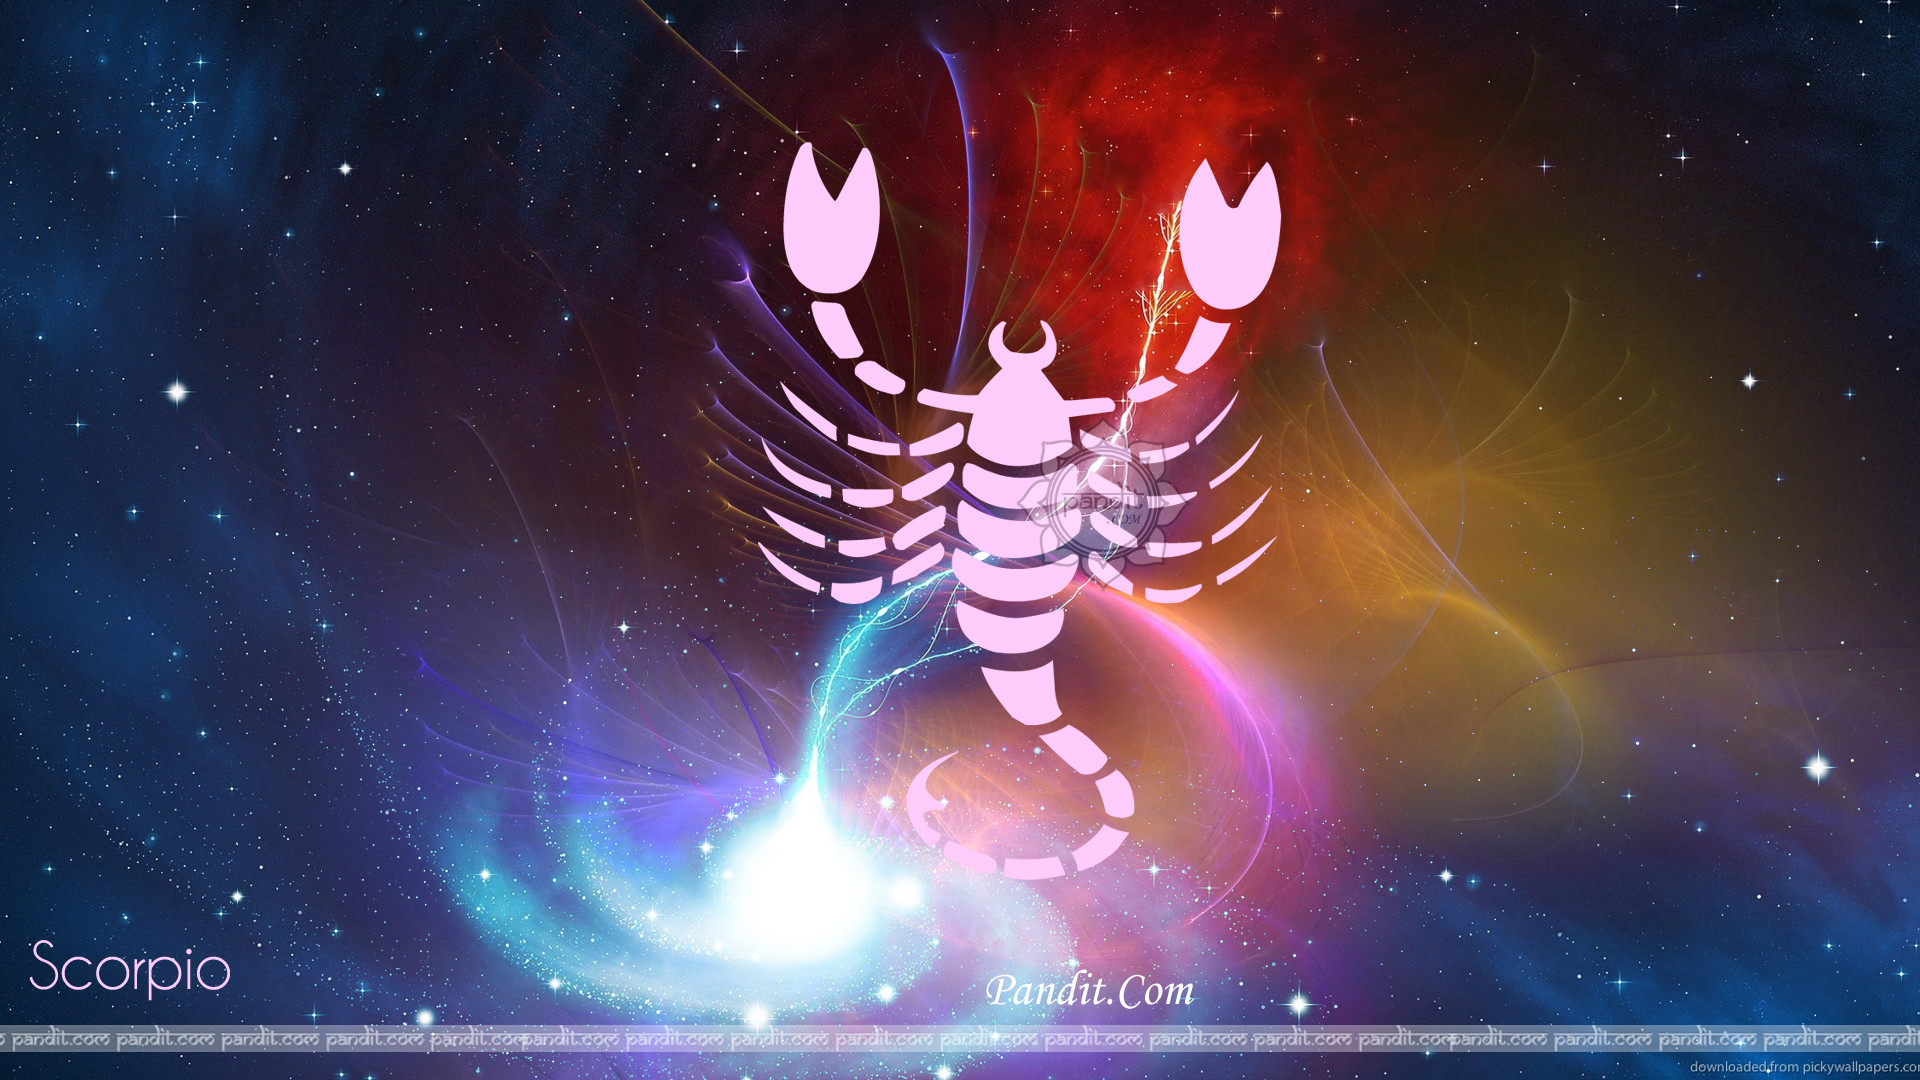 Res: 1920x1080, Scorpio Zodiac Sign HD Wallpapers